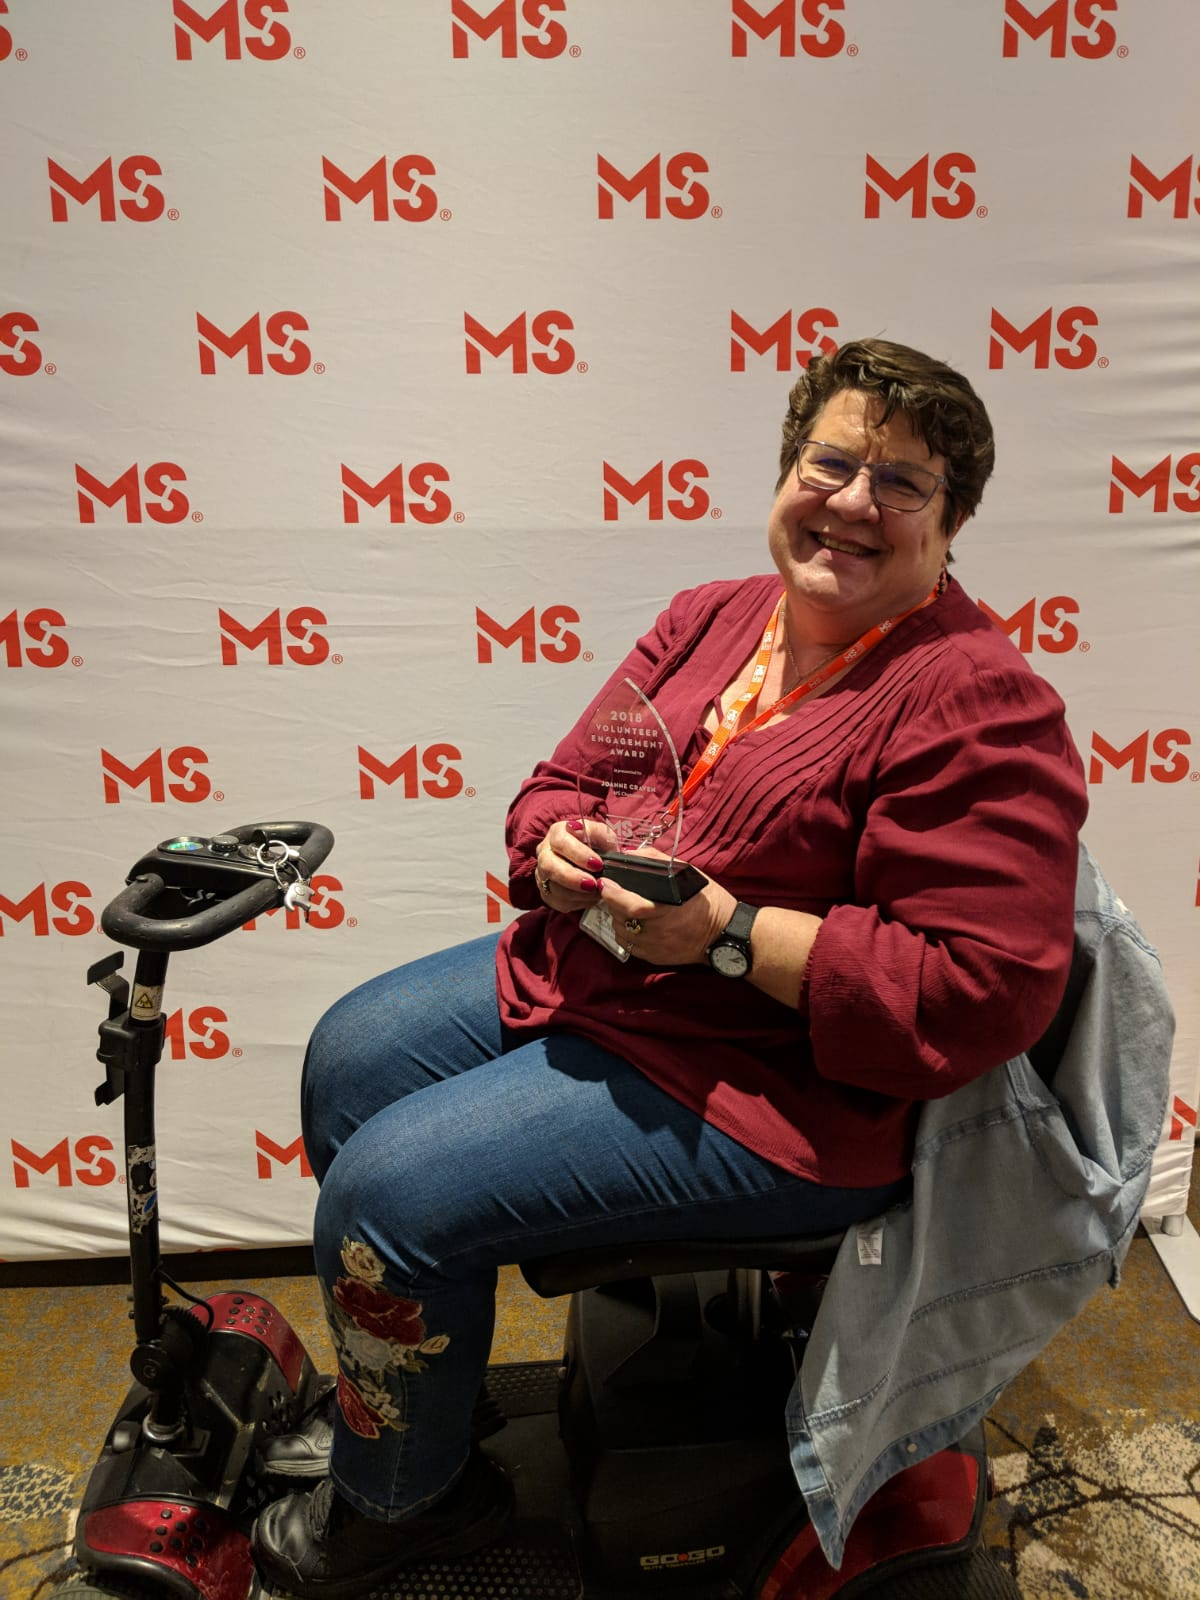 Abbotsford Woman Receives Prestigious Award from the MS Society